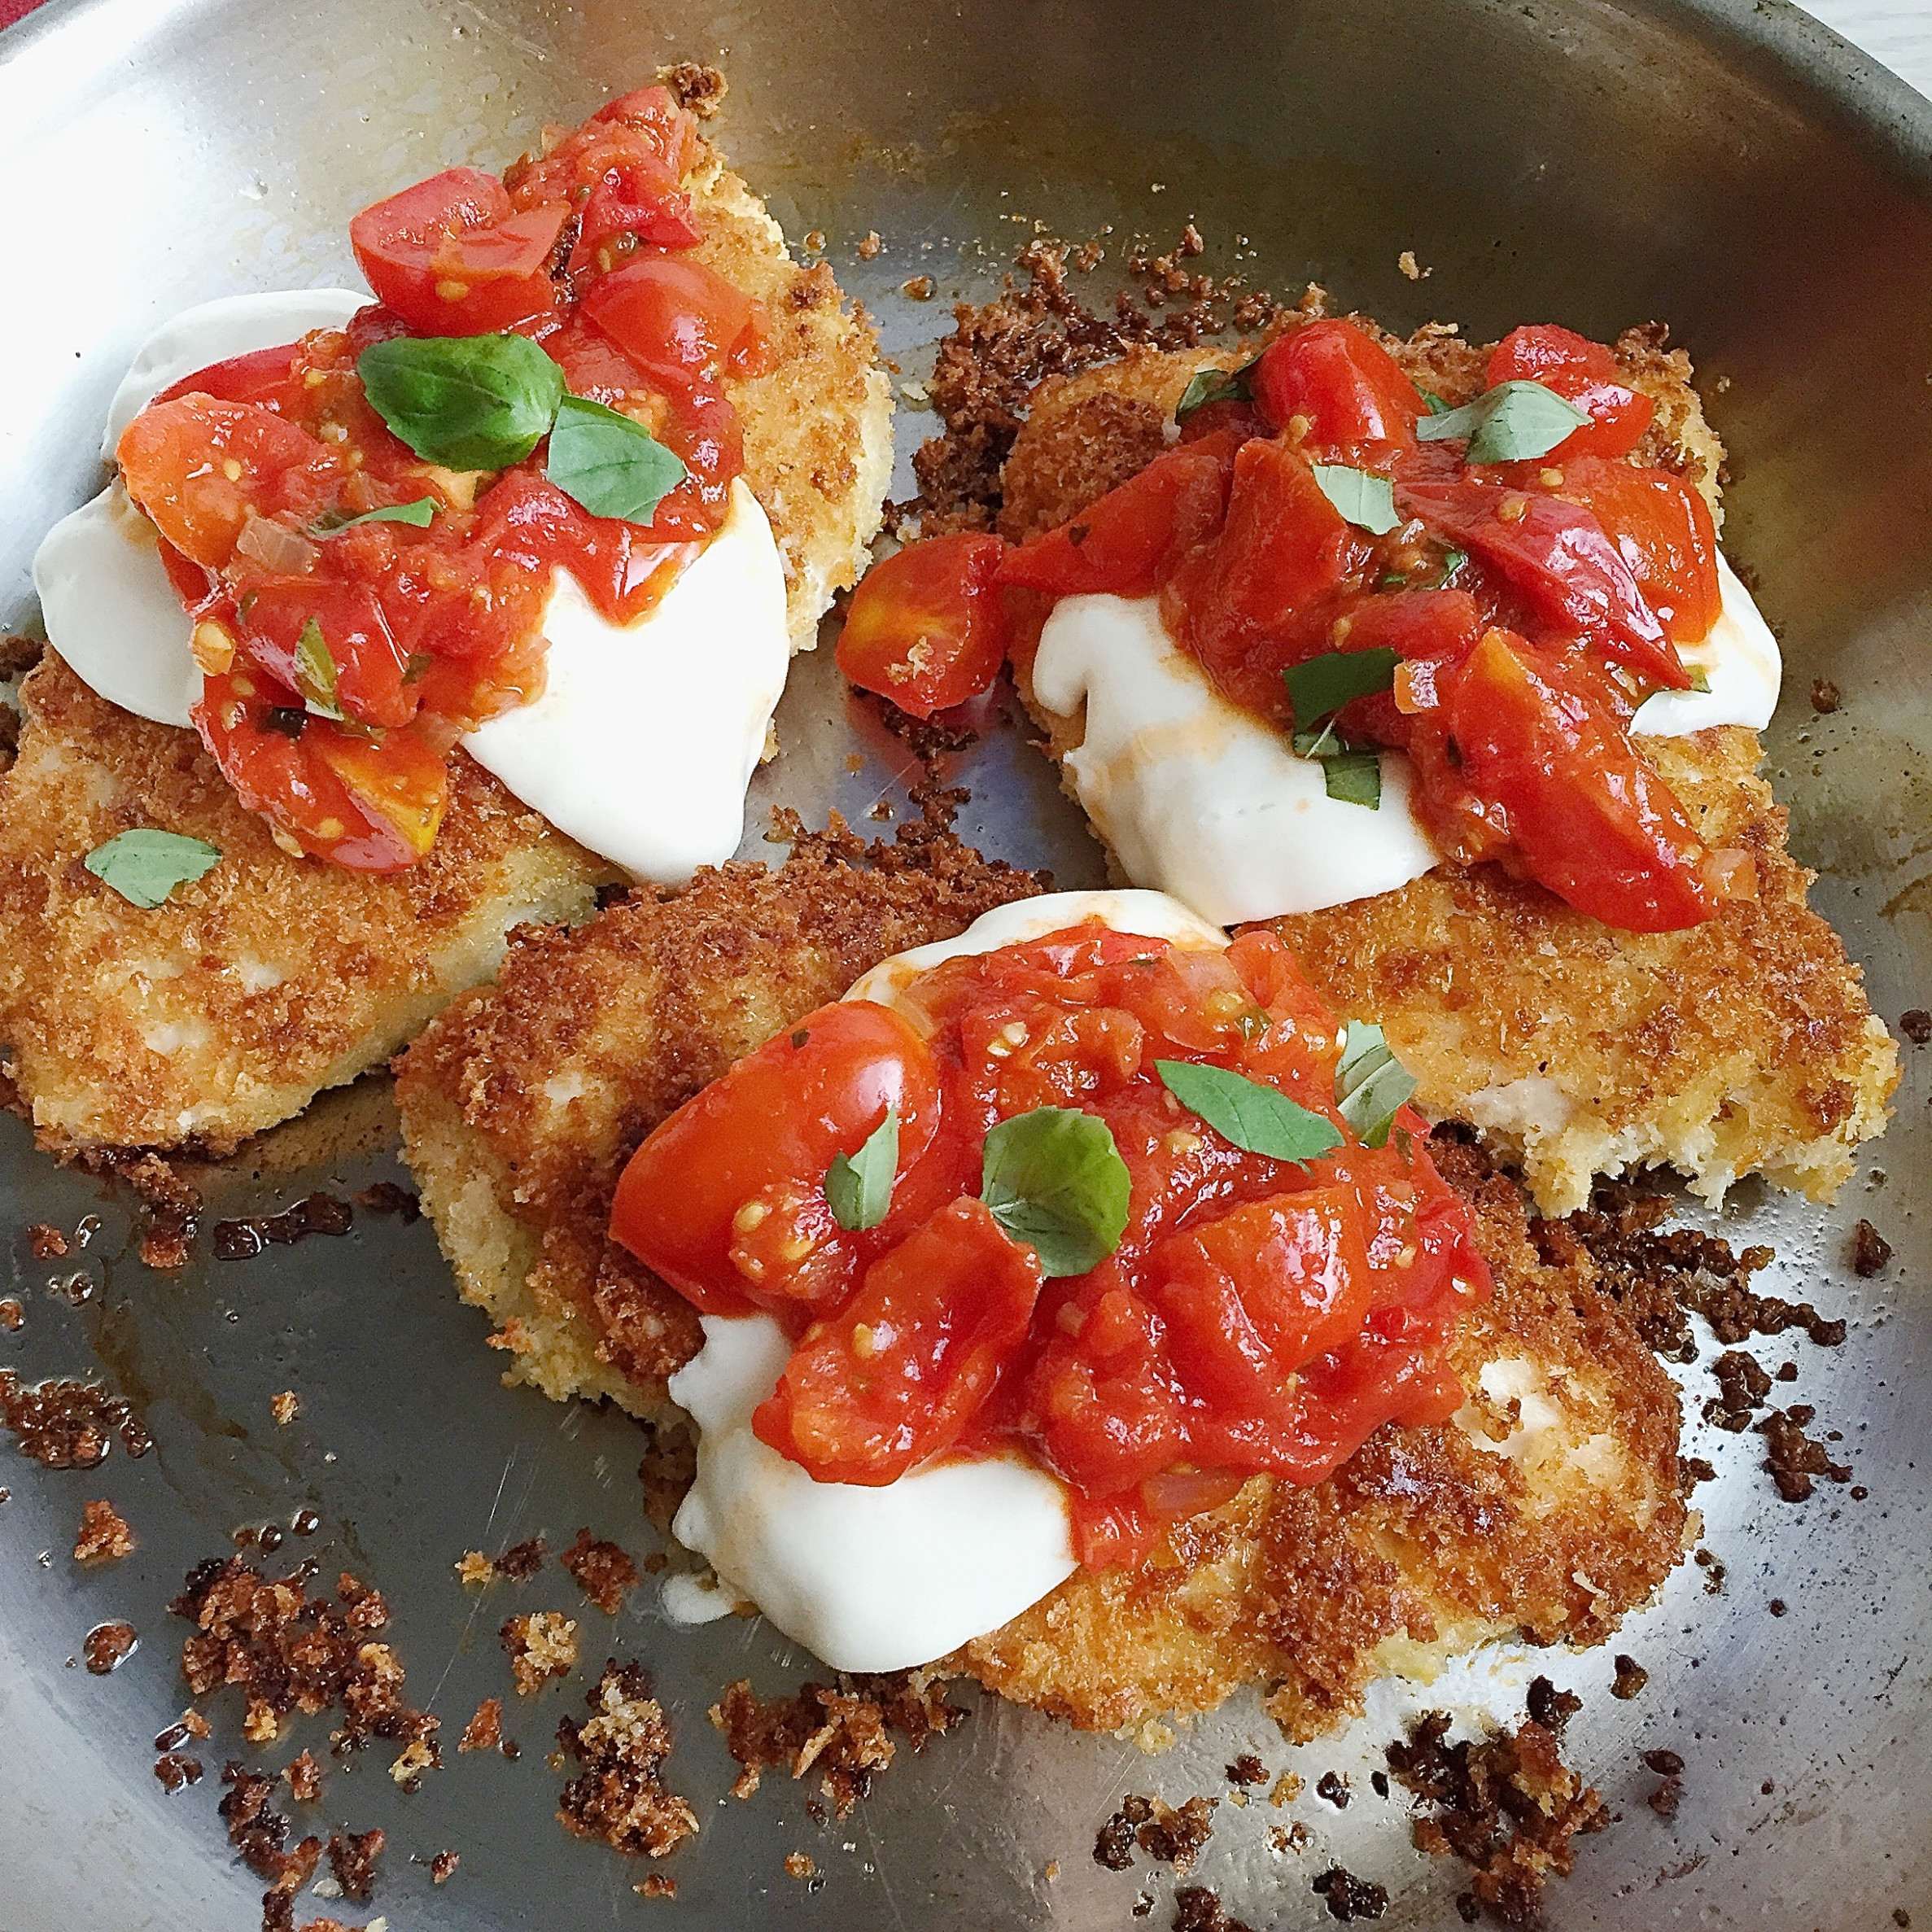 Best Crispy Chicken Parmesan With Tomatoes And Mozzarella ..